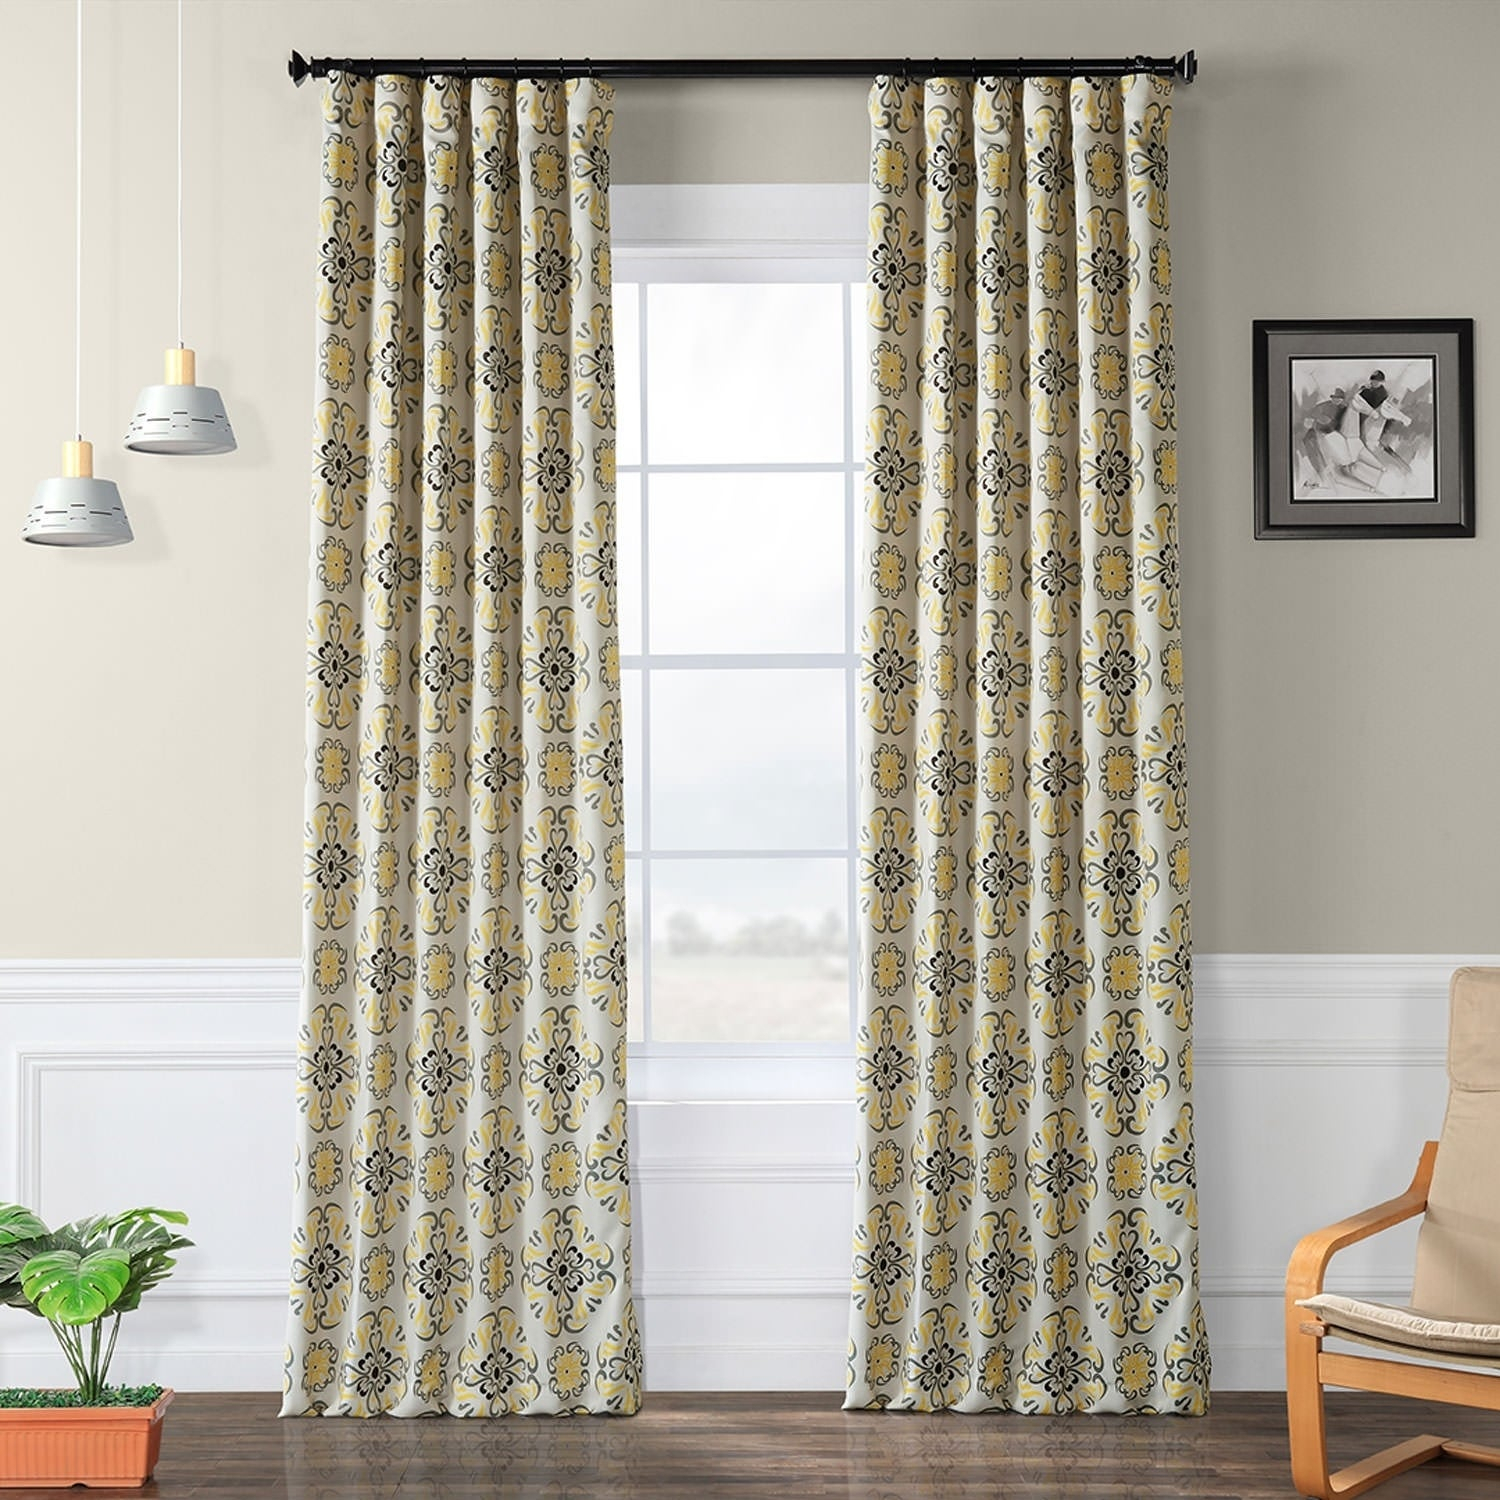 Yellow And Grey Blackout Curtains | Flisol Home Throughout The Curated Nomad Duane Jacquard Grommet Top Curtain Panel Pairs (Gallery 21 of 30)